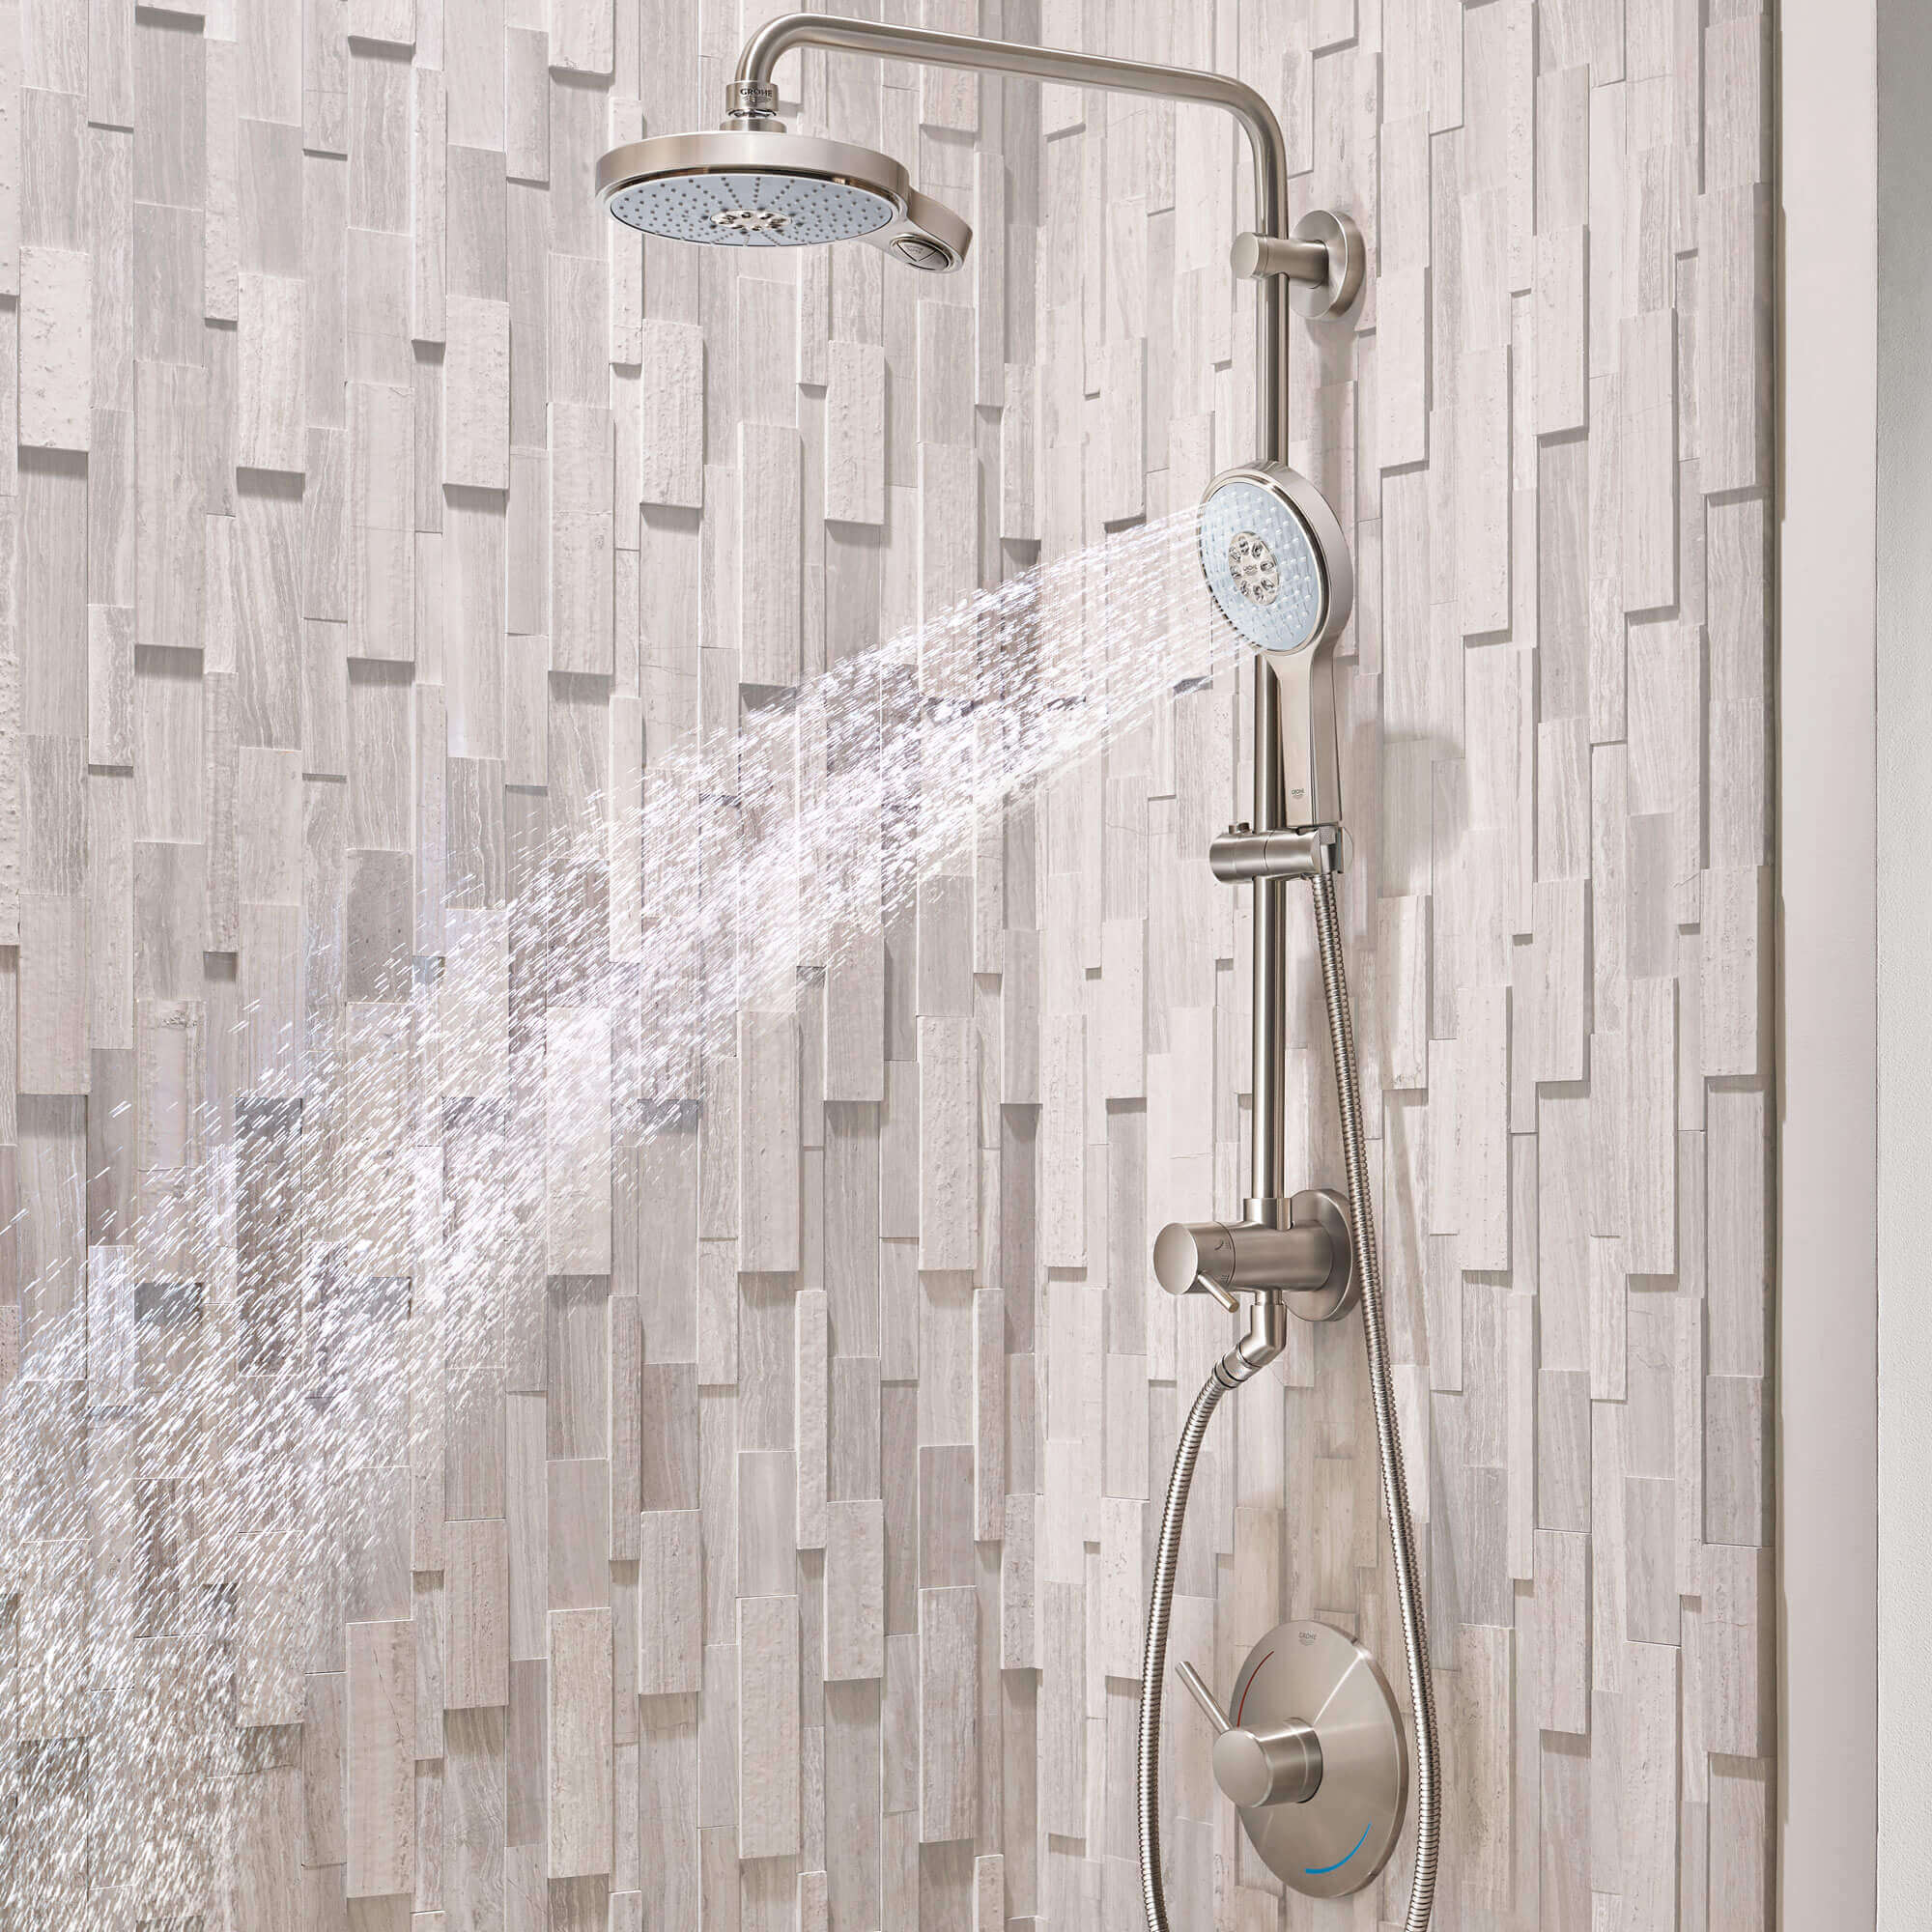 Retro-fit bathroom shower spouting water